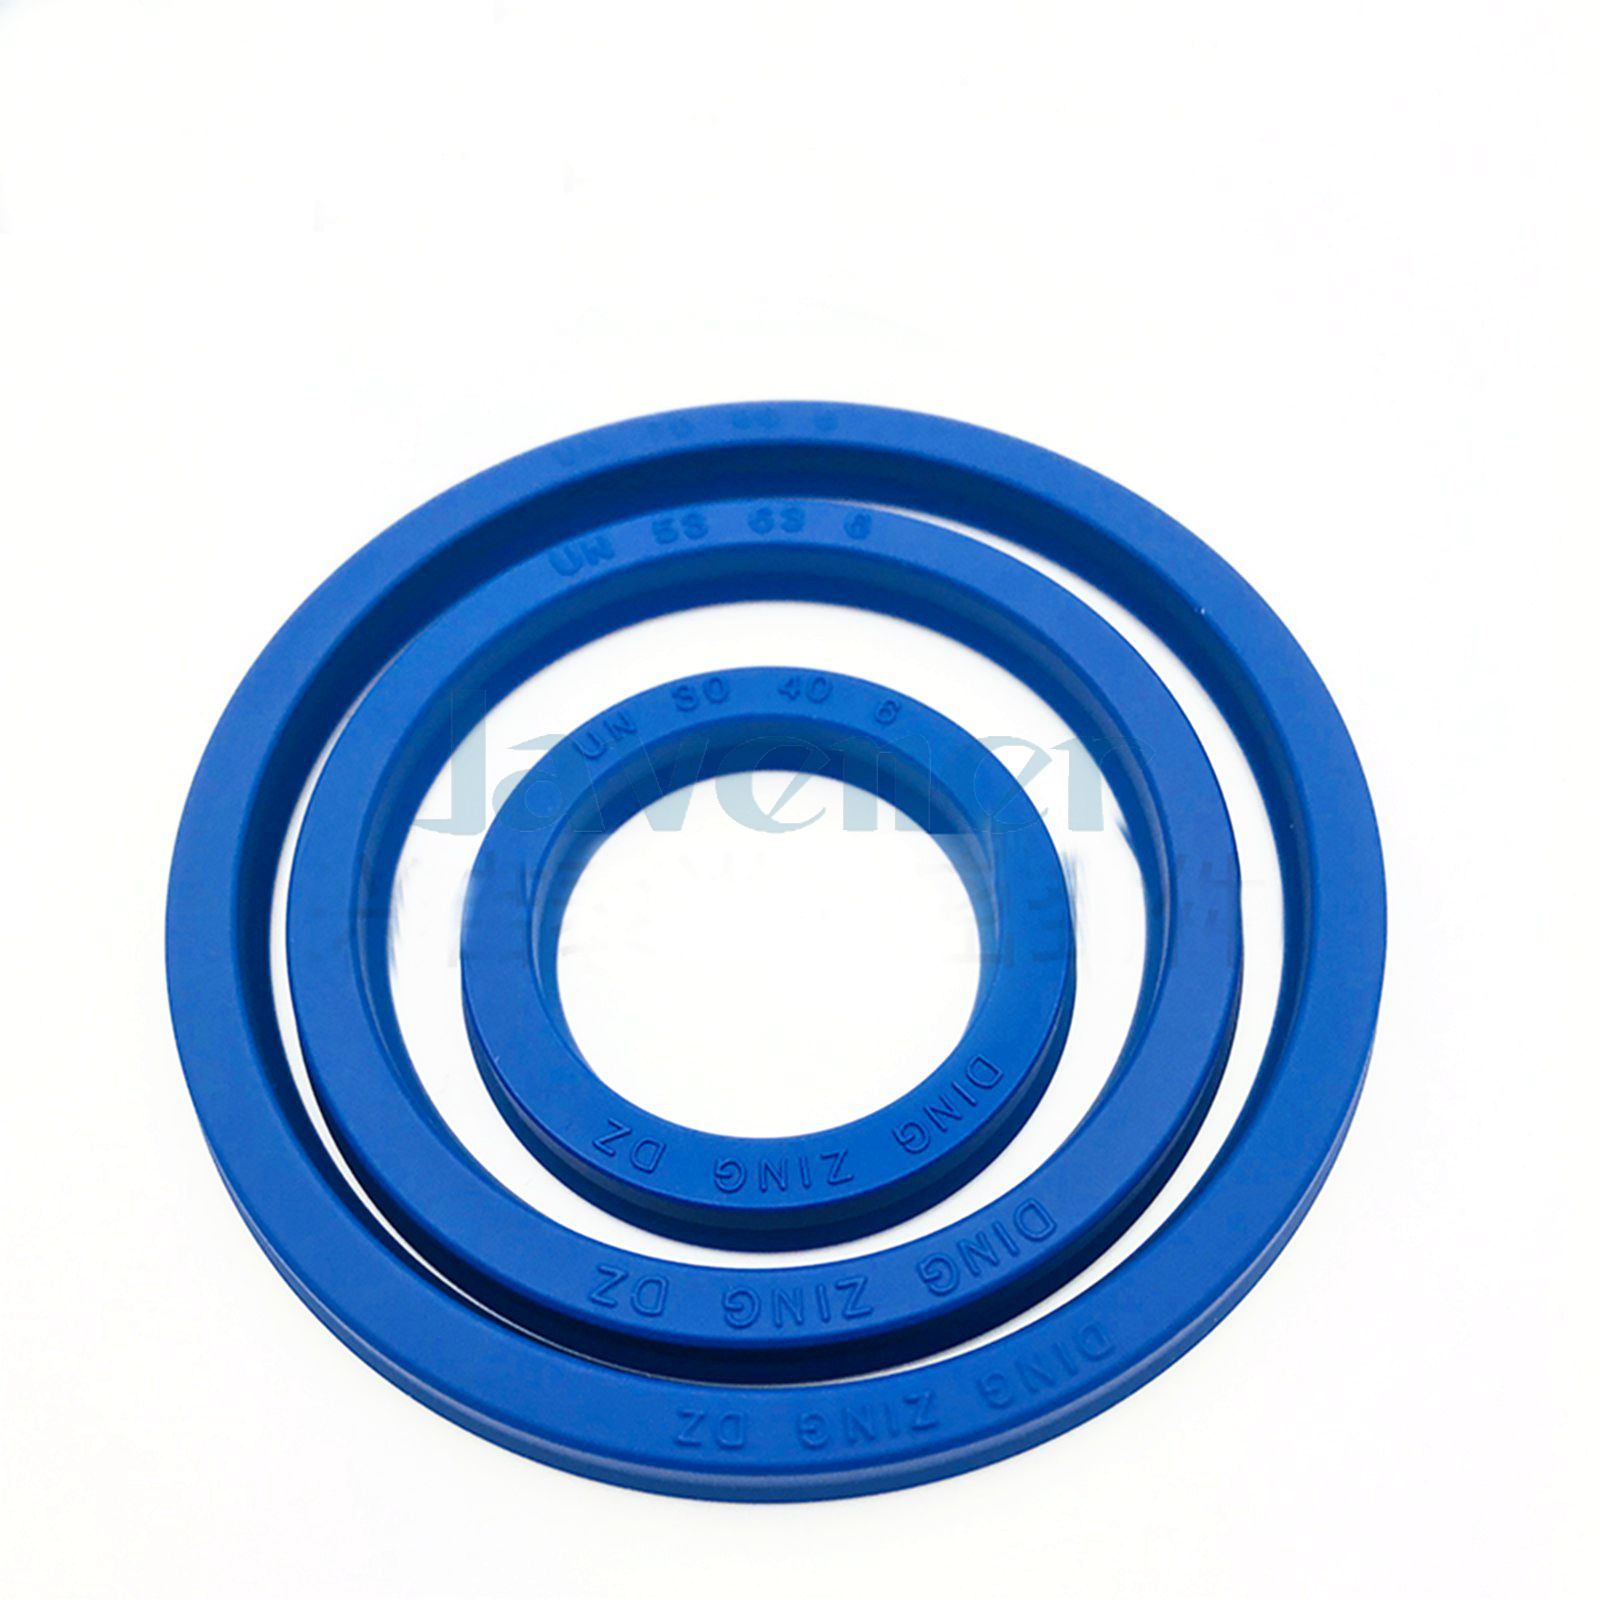 Hydraulic Rod Seals Large range of sizes available 4mm x 10mm x 4mm U-Cup UN Type